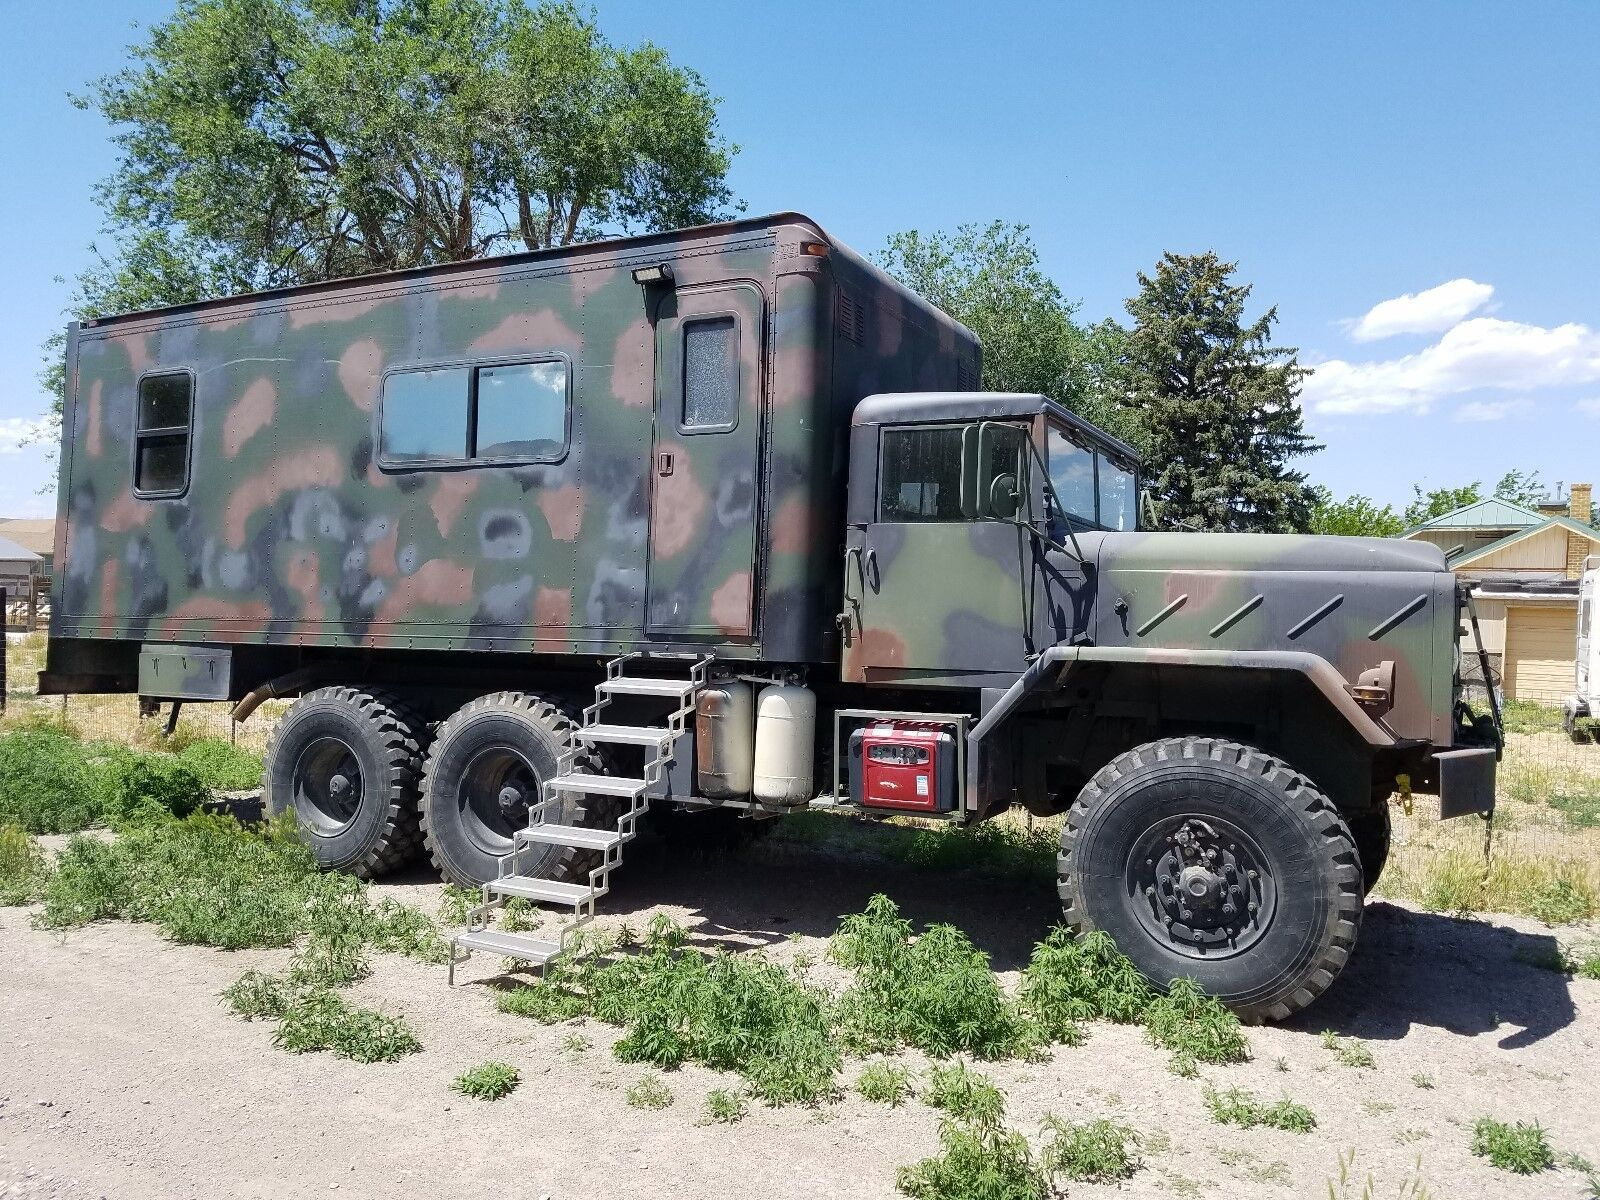 Deuce And A Half Camper >> M939 Offroad Camper 1991 Bmy M939a2 5-ton 6x6 20 Foot Living Area - Used Bmy for sale in ...